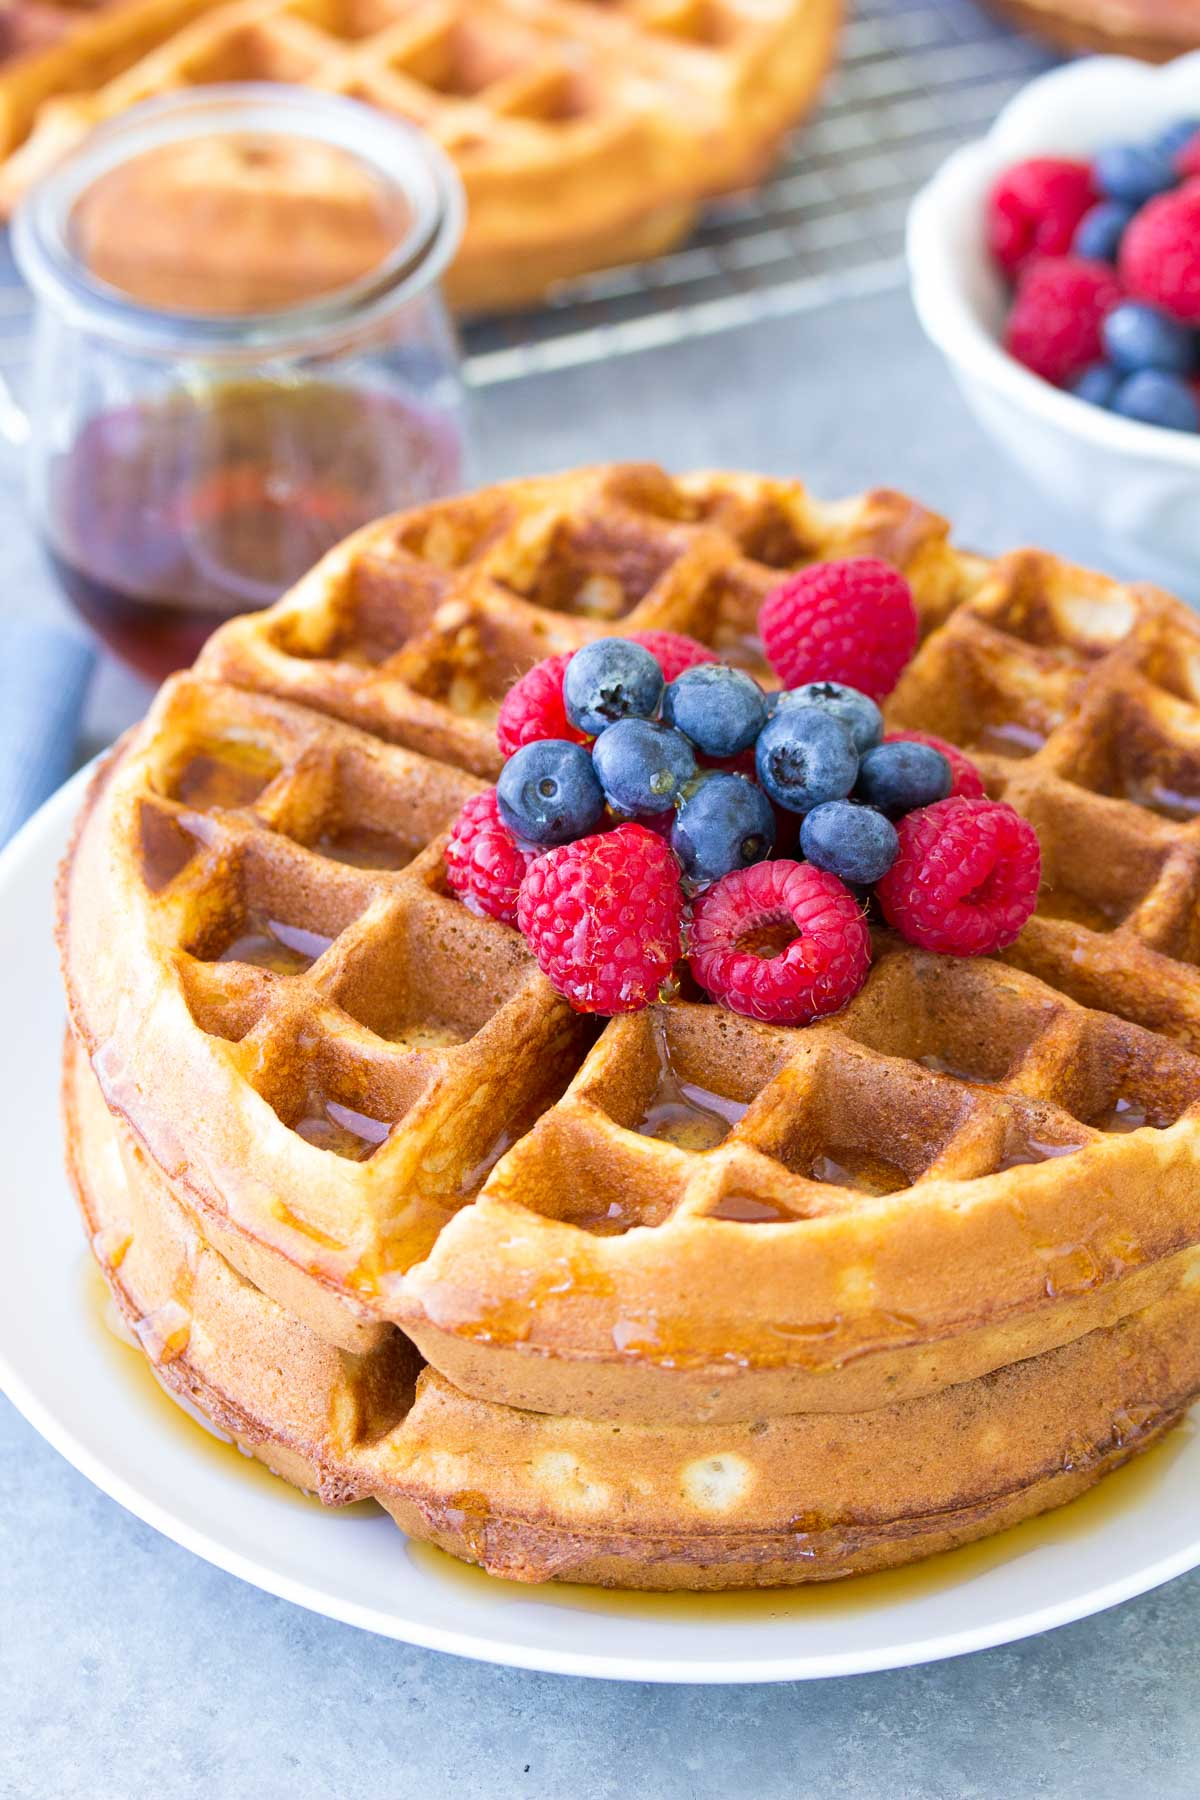 waffles on a plate with fresh berries and syrup on top